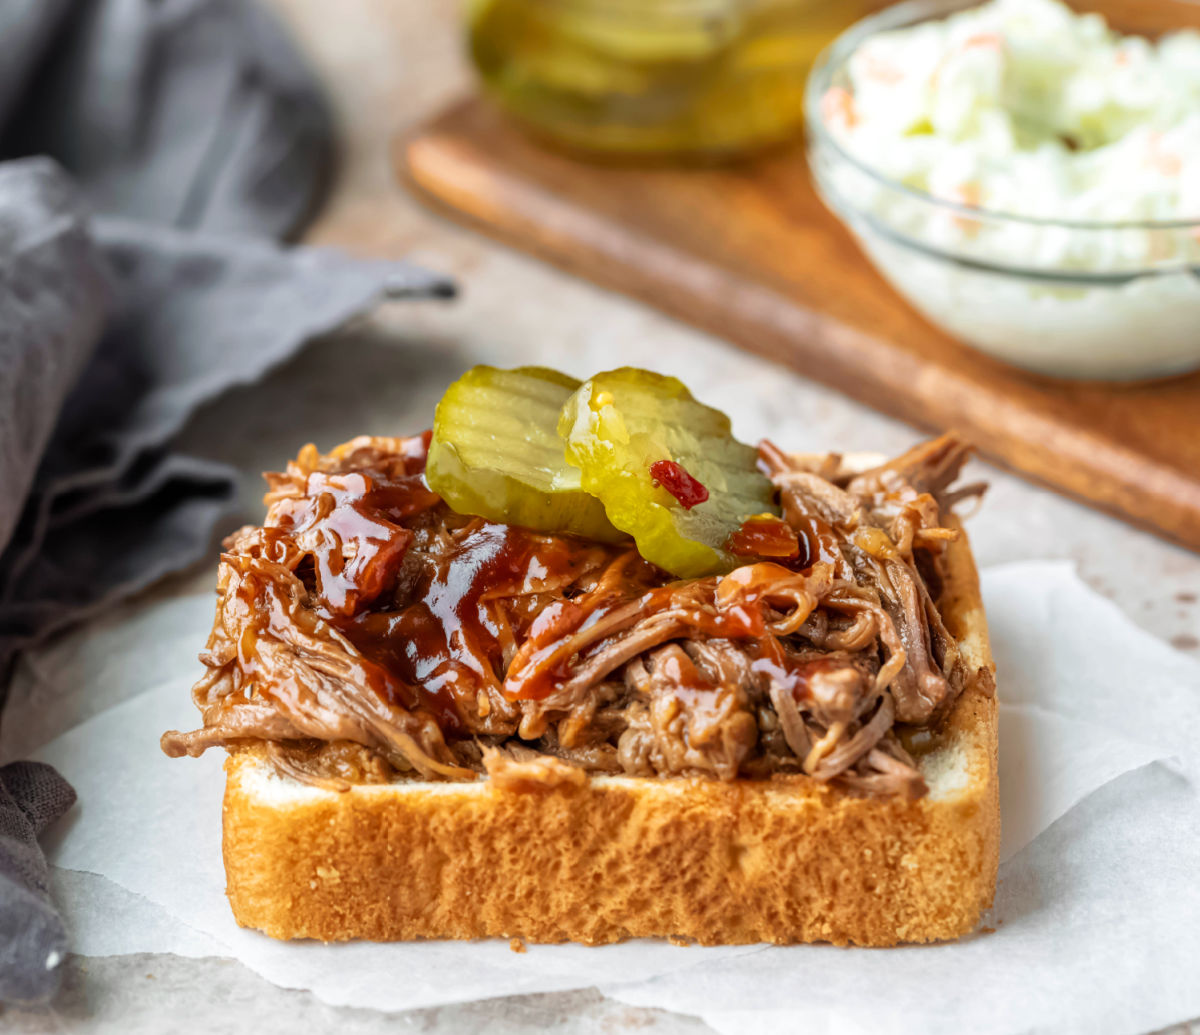 Beef brisket topped with barbecue sauce and pickle chips.